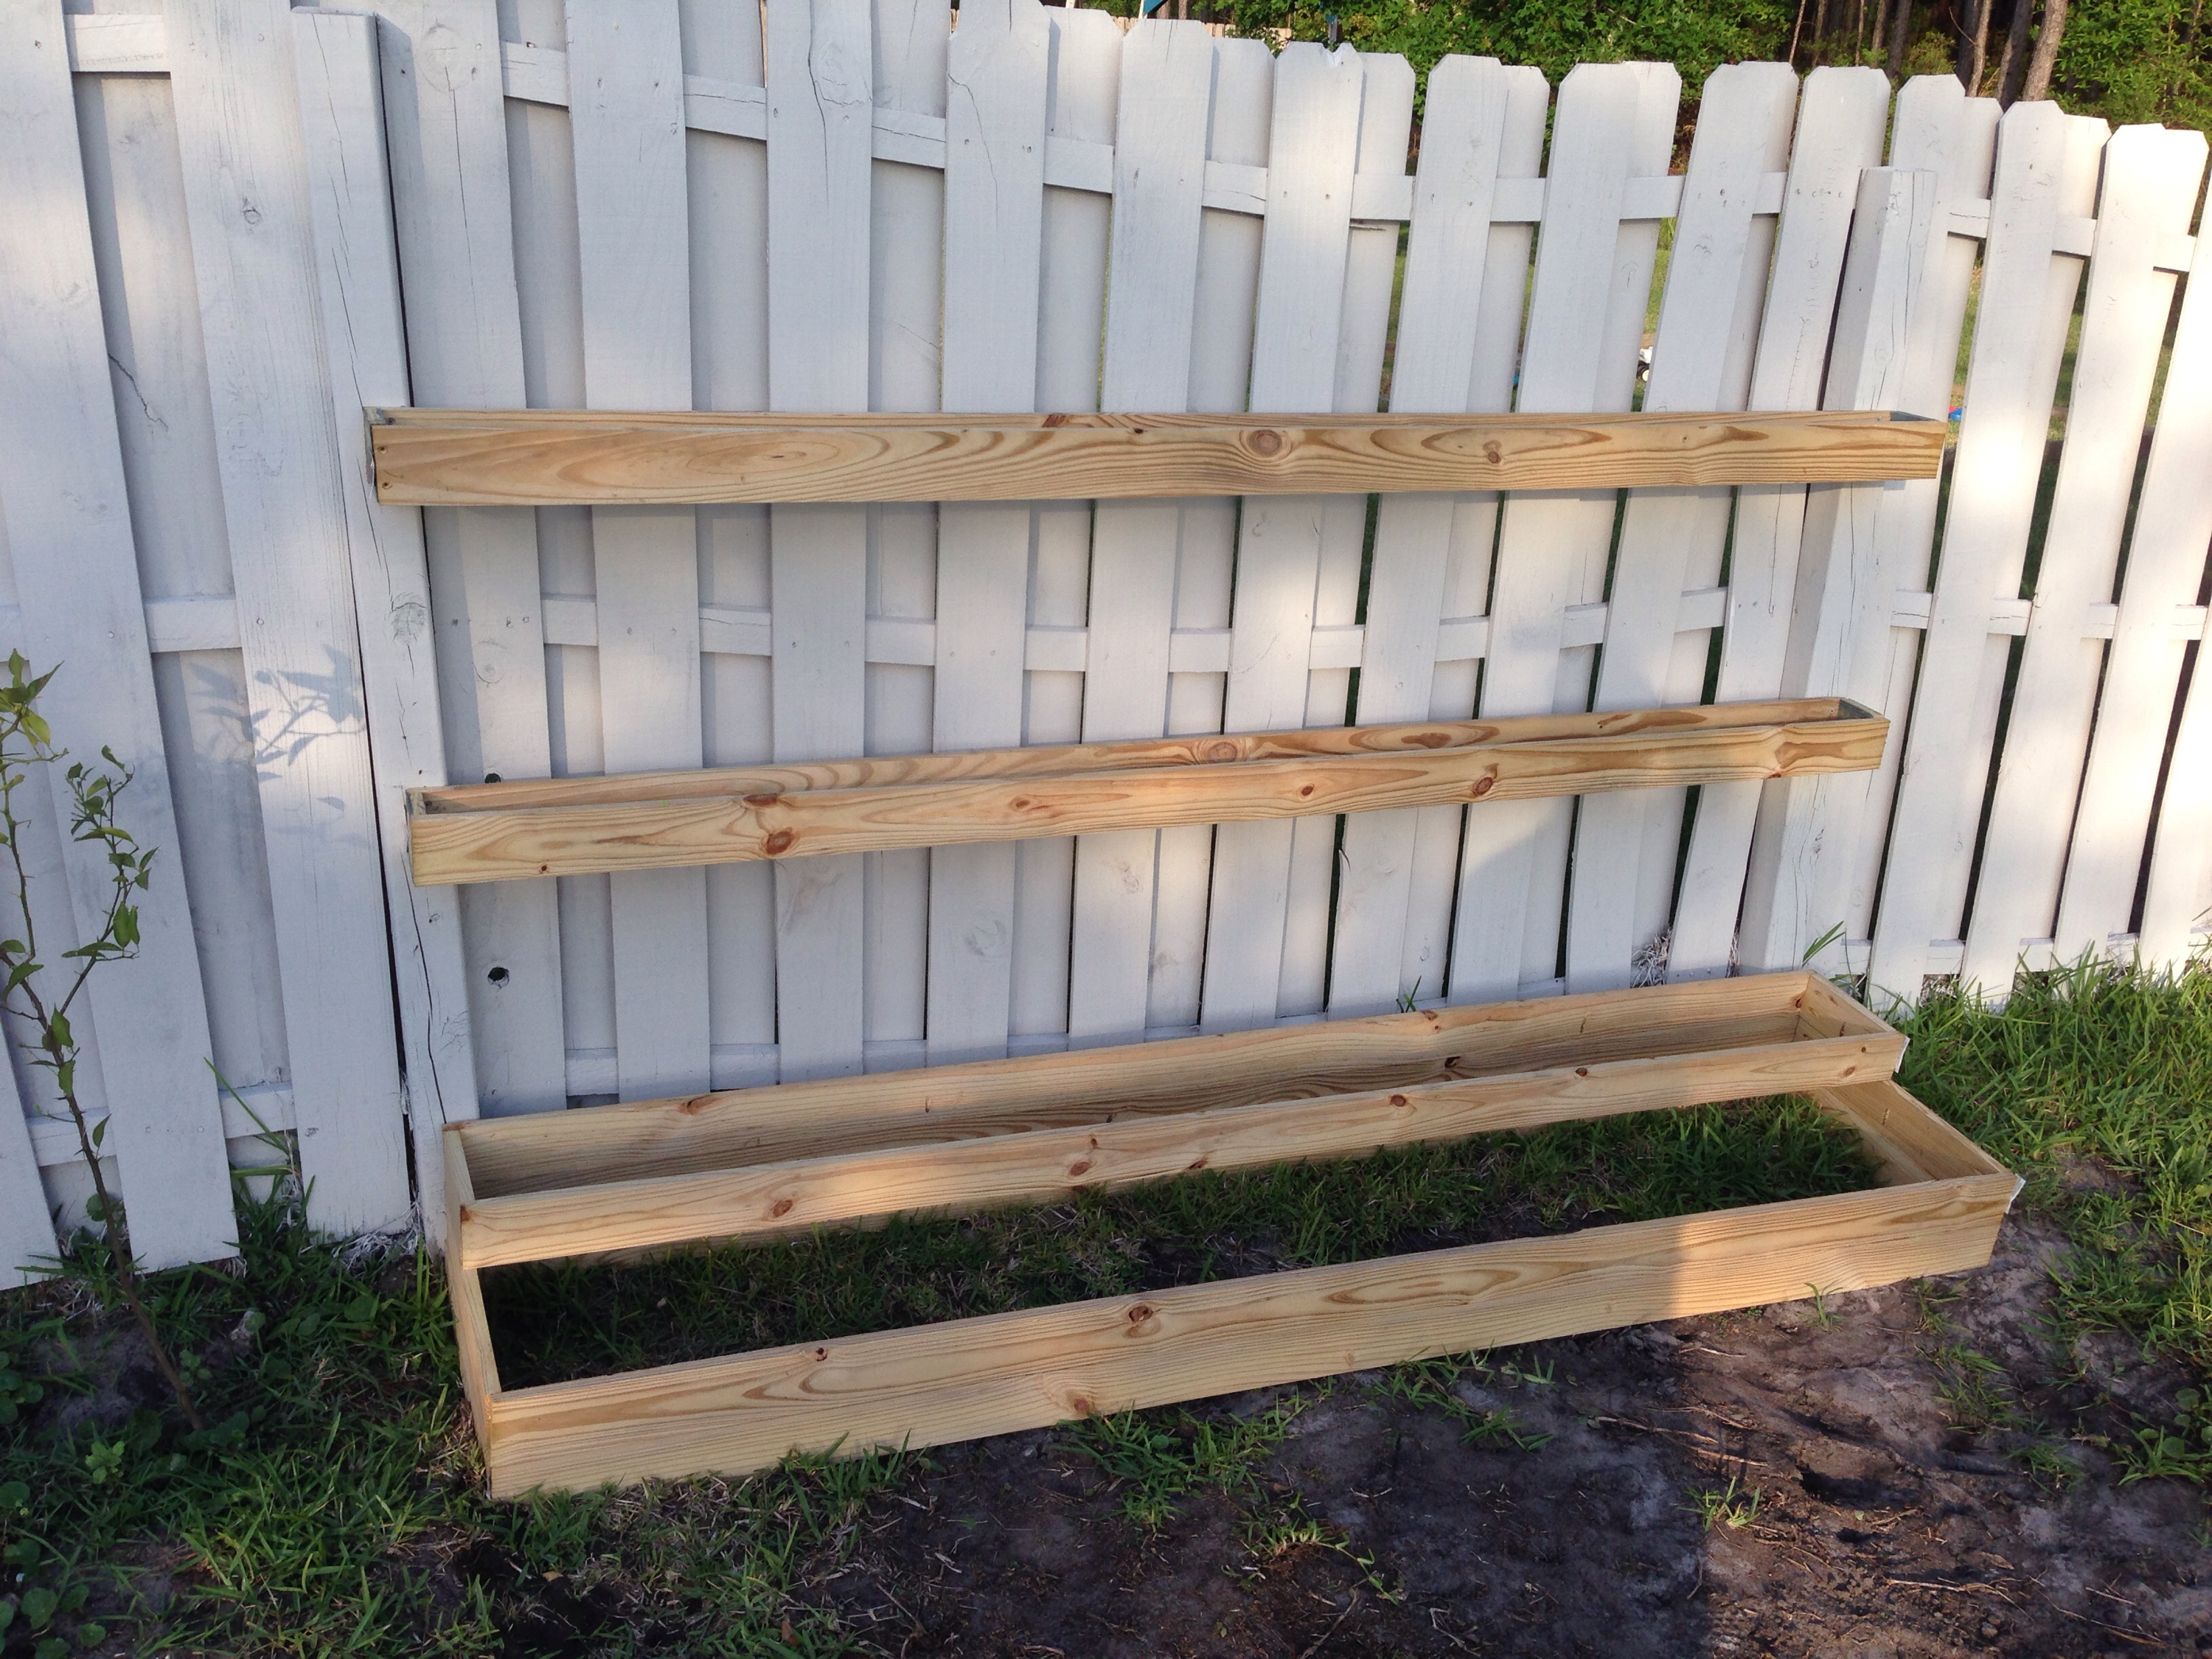 Diy tiered planter vegetable herb garden sunshine dad for Rain gutter planter box